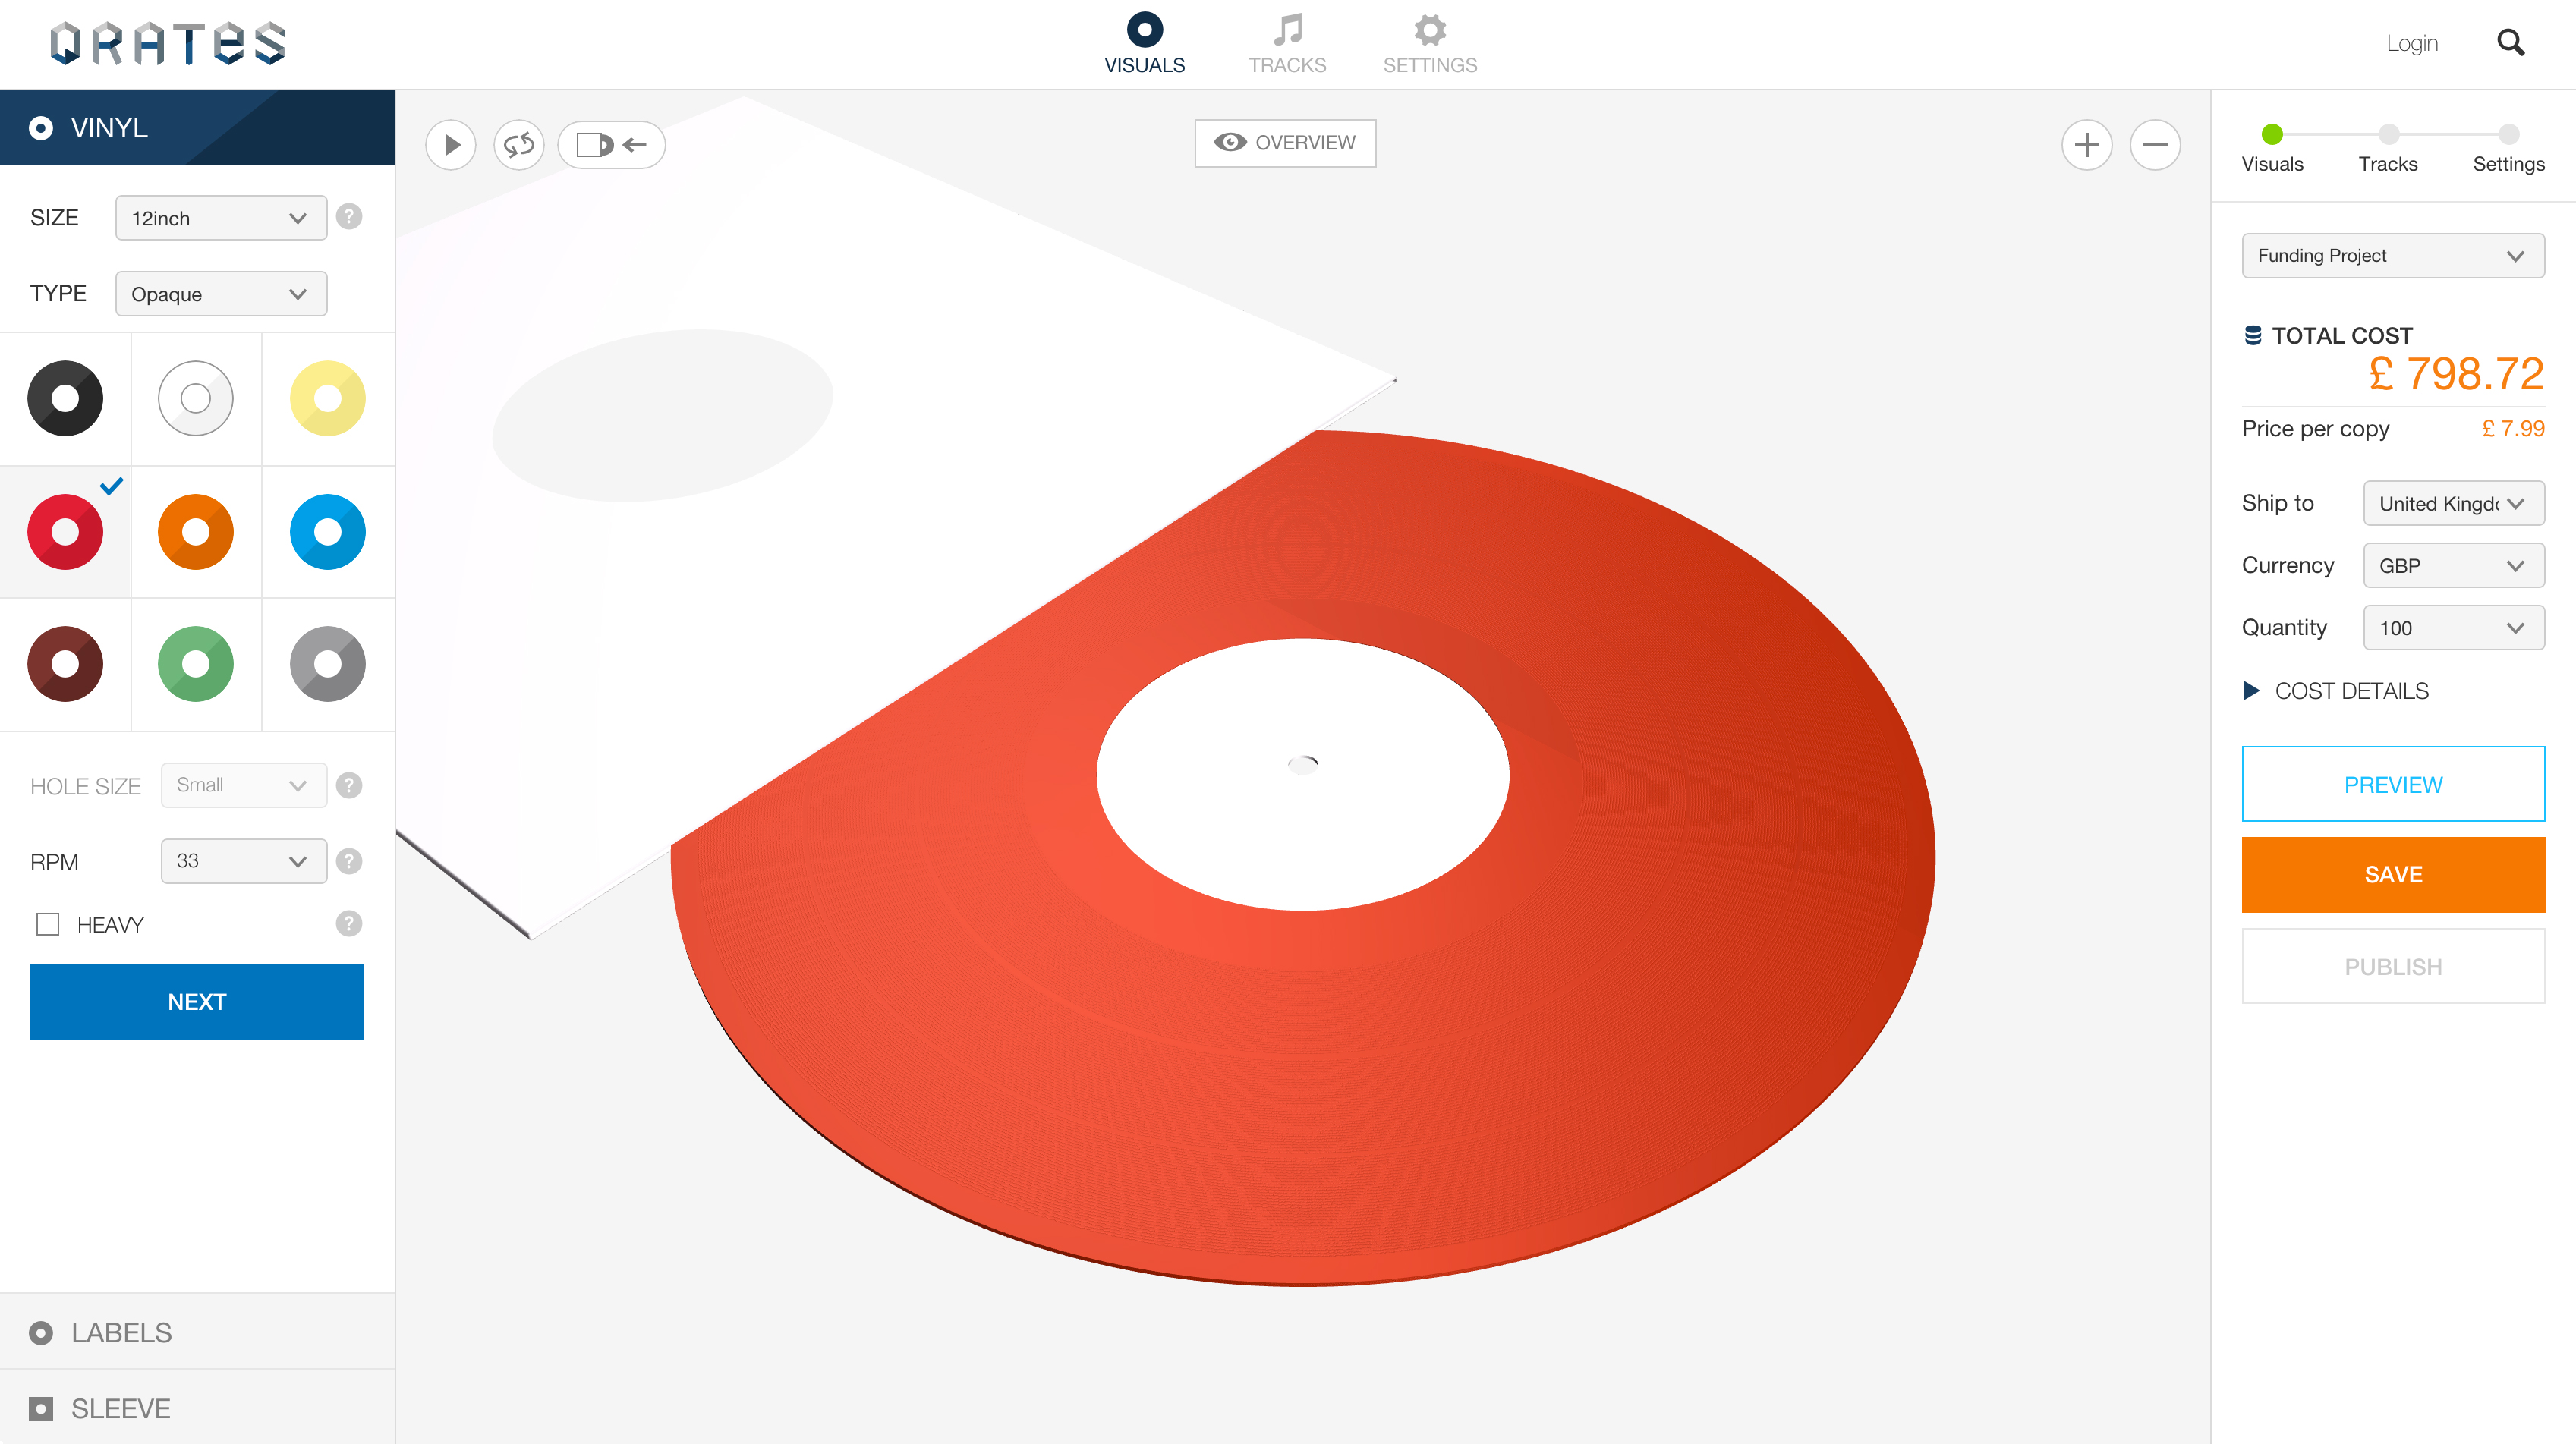 Qrates' site makes designing your vinyl records a relatively easy process.